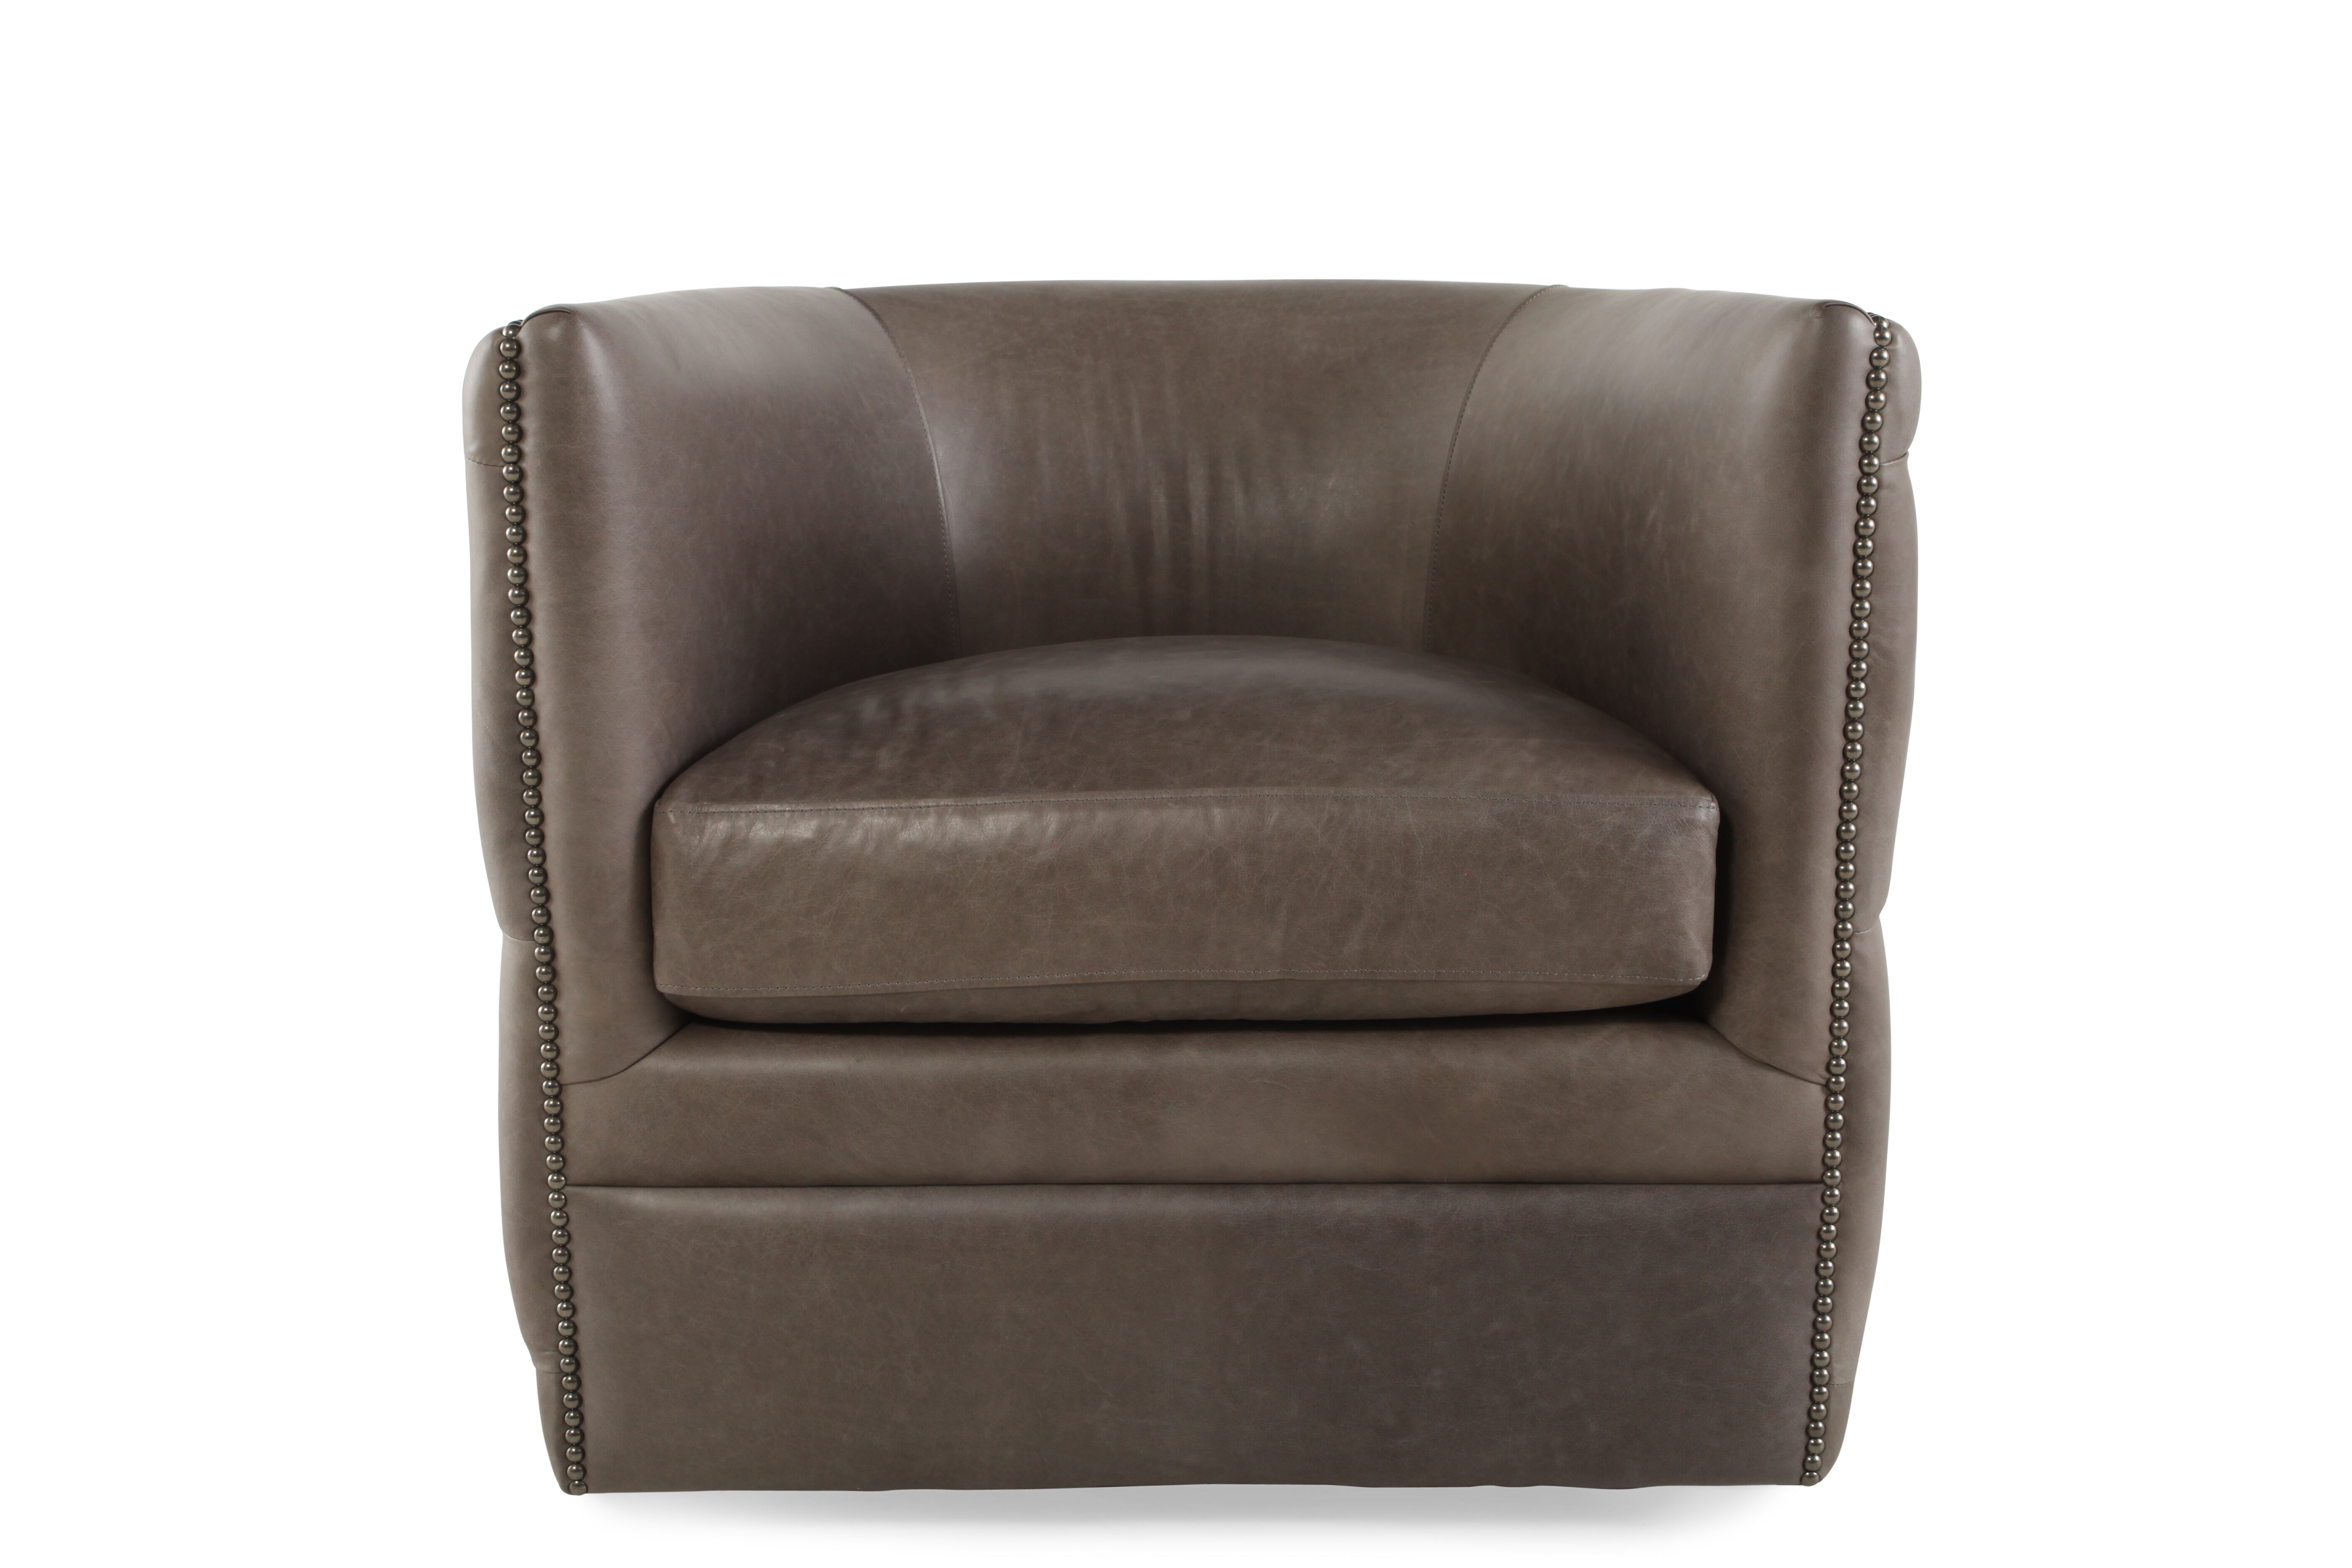 Images Nailhead Trimmed Industrial 31.5u0026quot; Swivel Chair In Dark Latte  Nailhead Trimmed Industrial 31.5u0026quot; Swivel Chair In Dark Latte